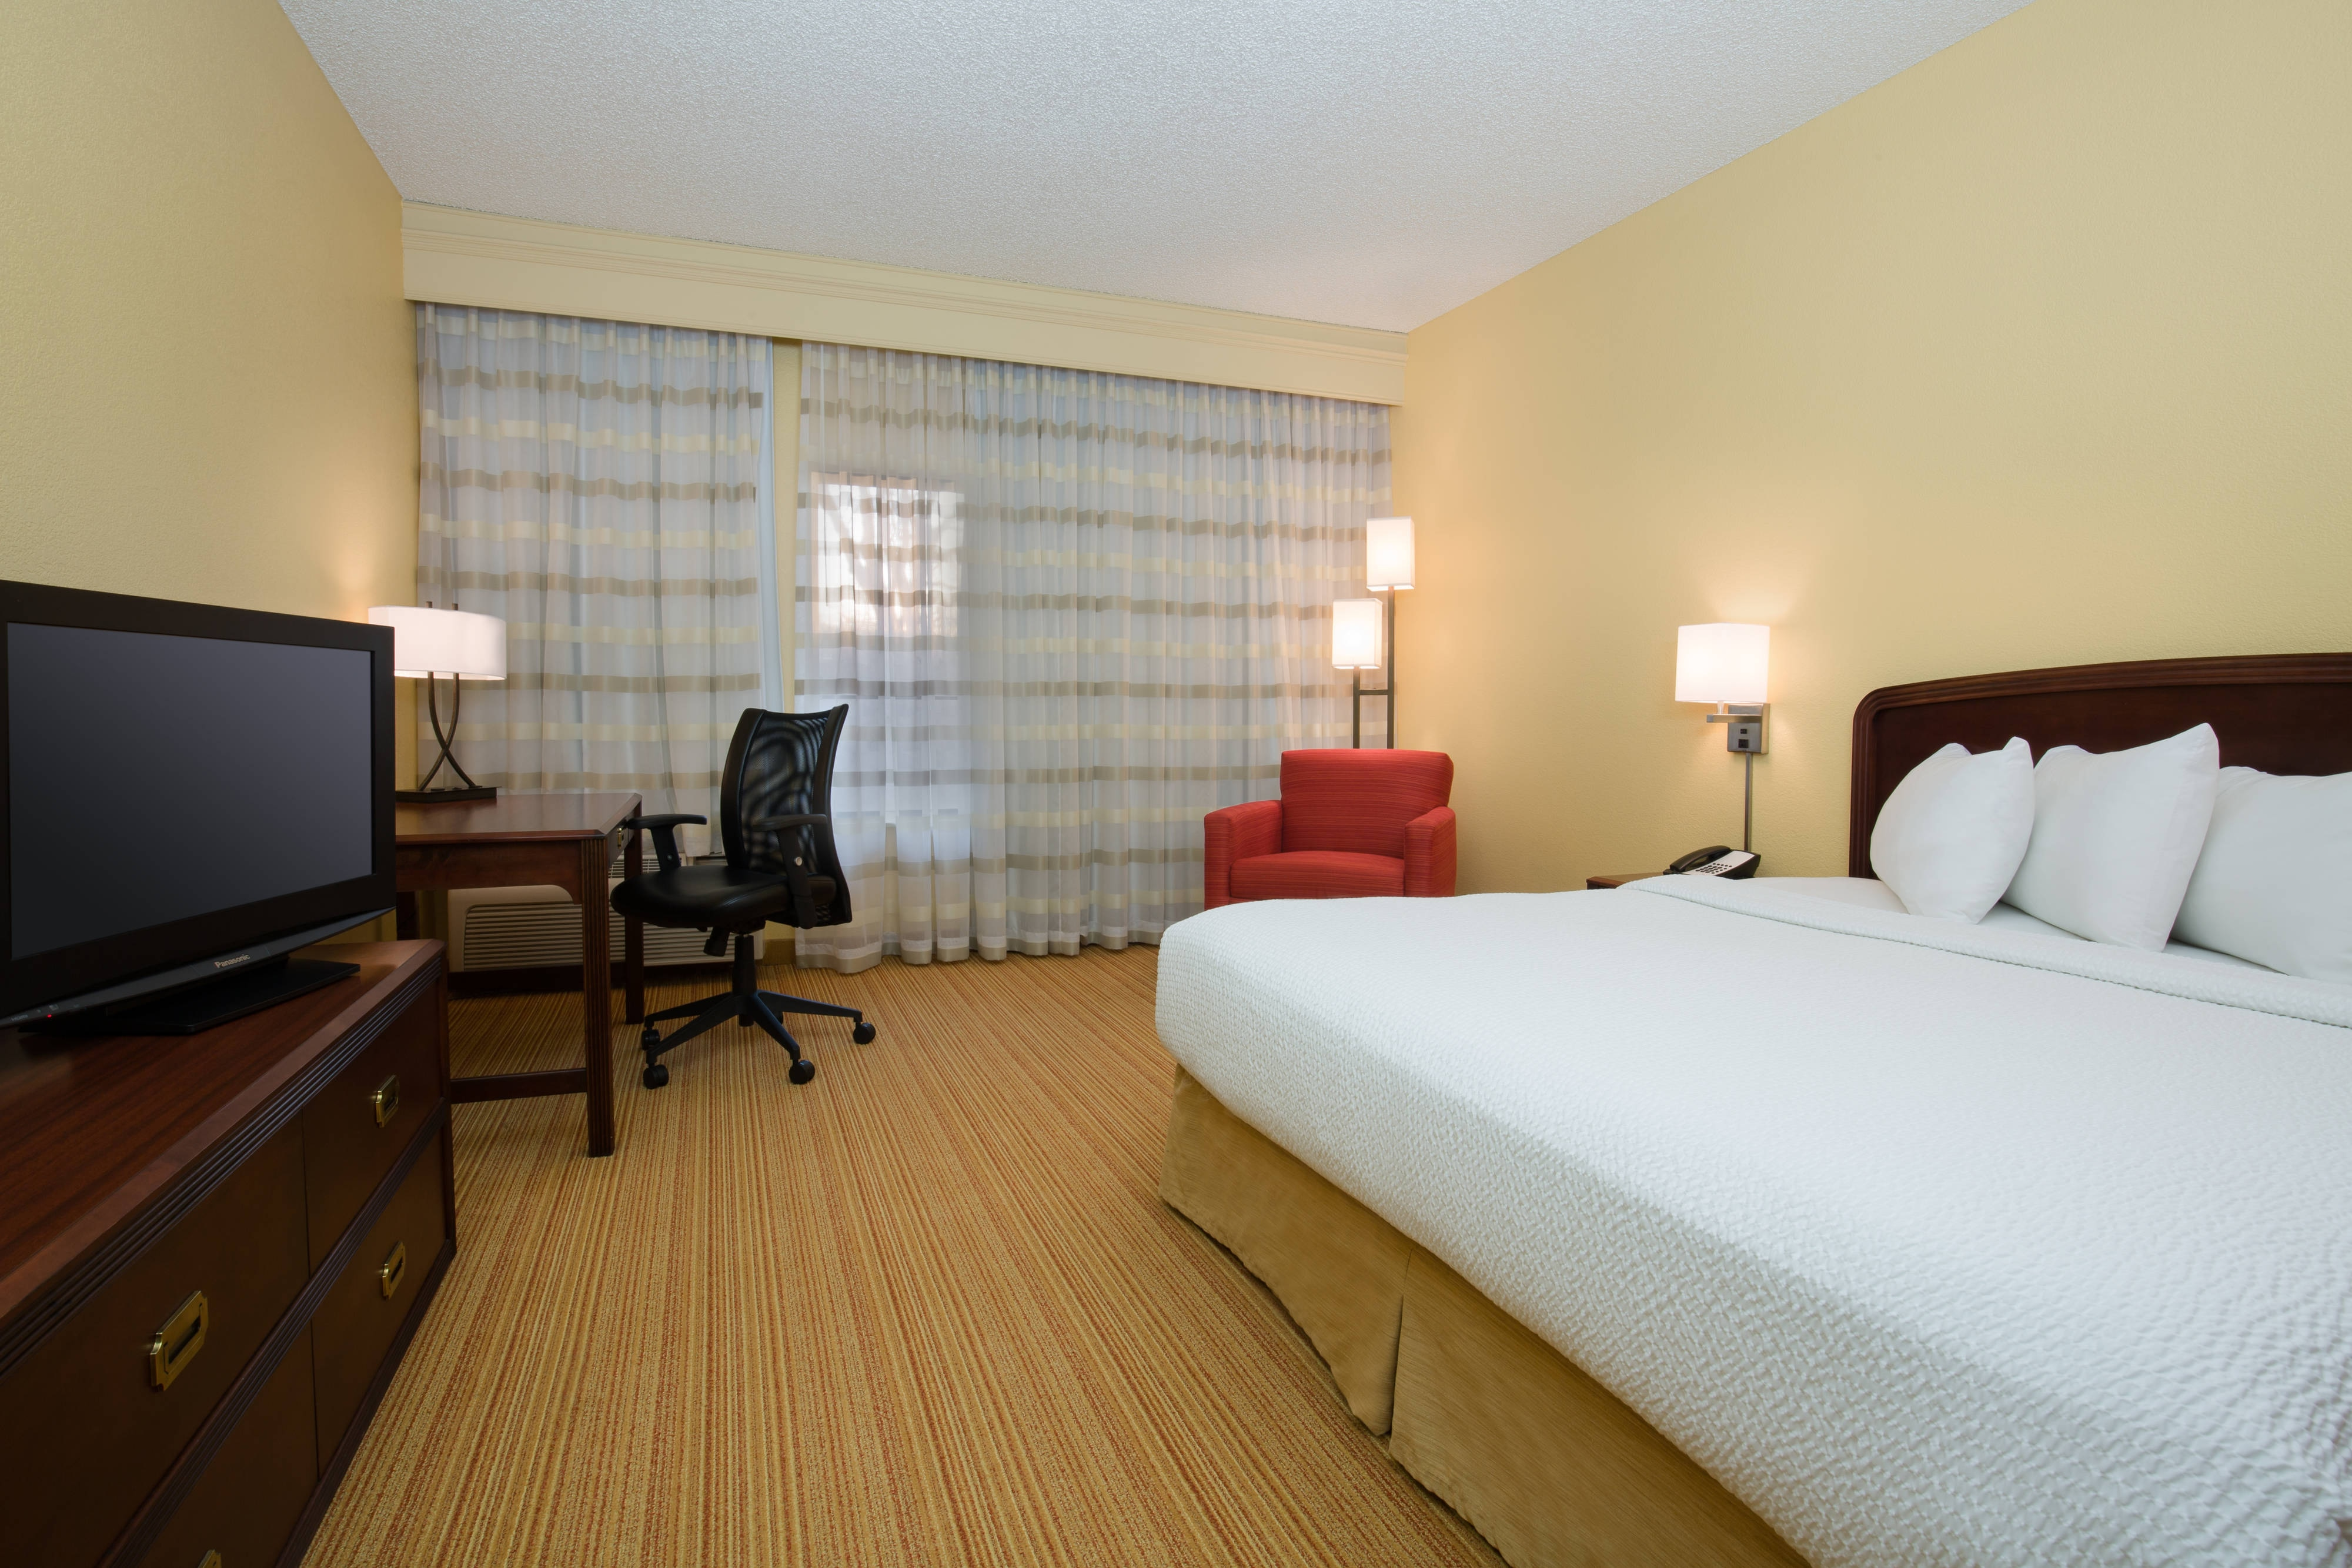 Roseville California Hotel King Guestroom